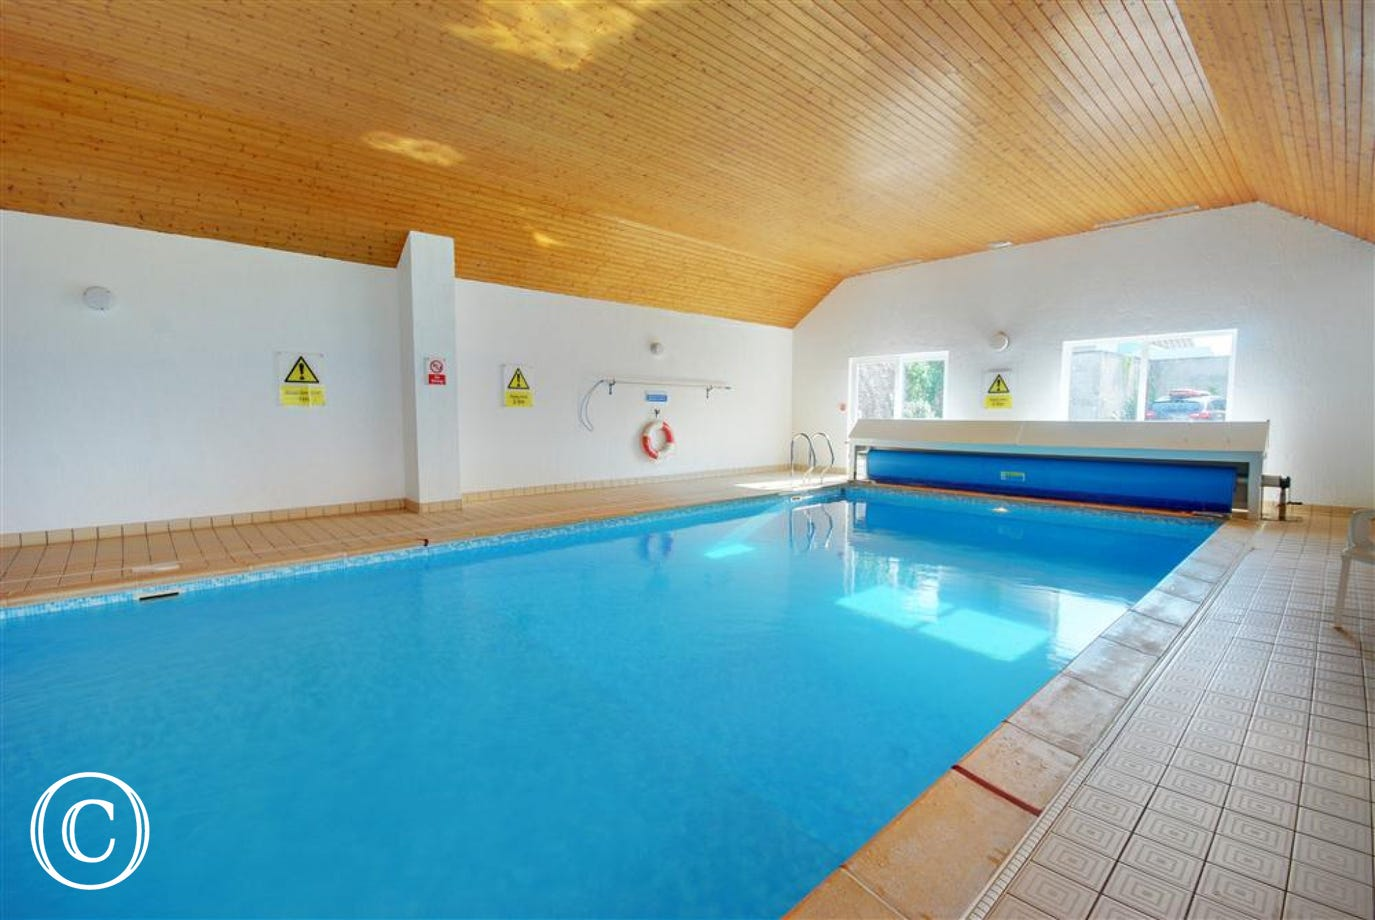 The apartment is conveniently placed with quick and easy access to the heated swimming pool.